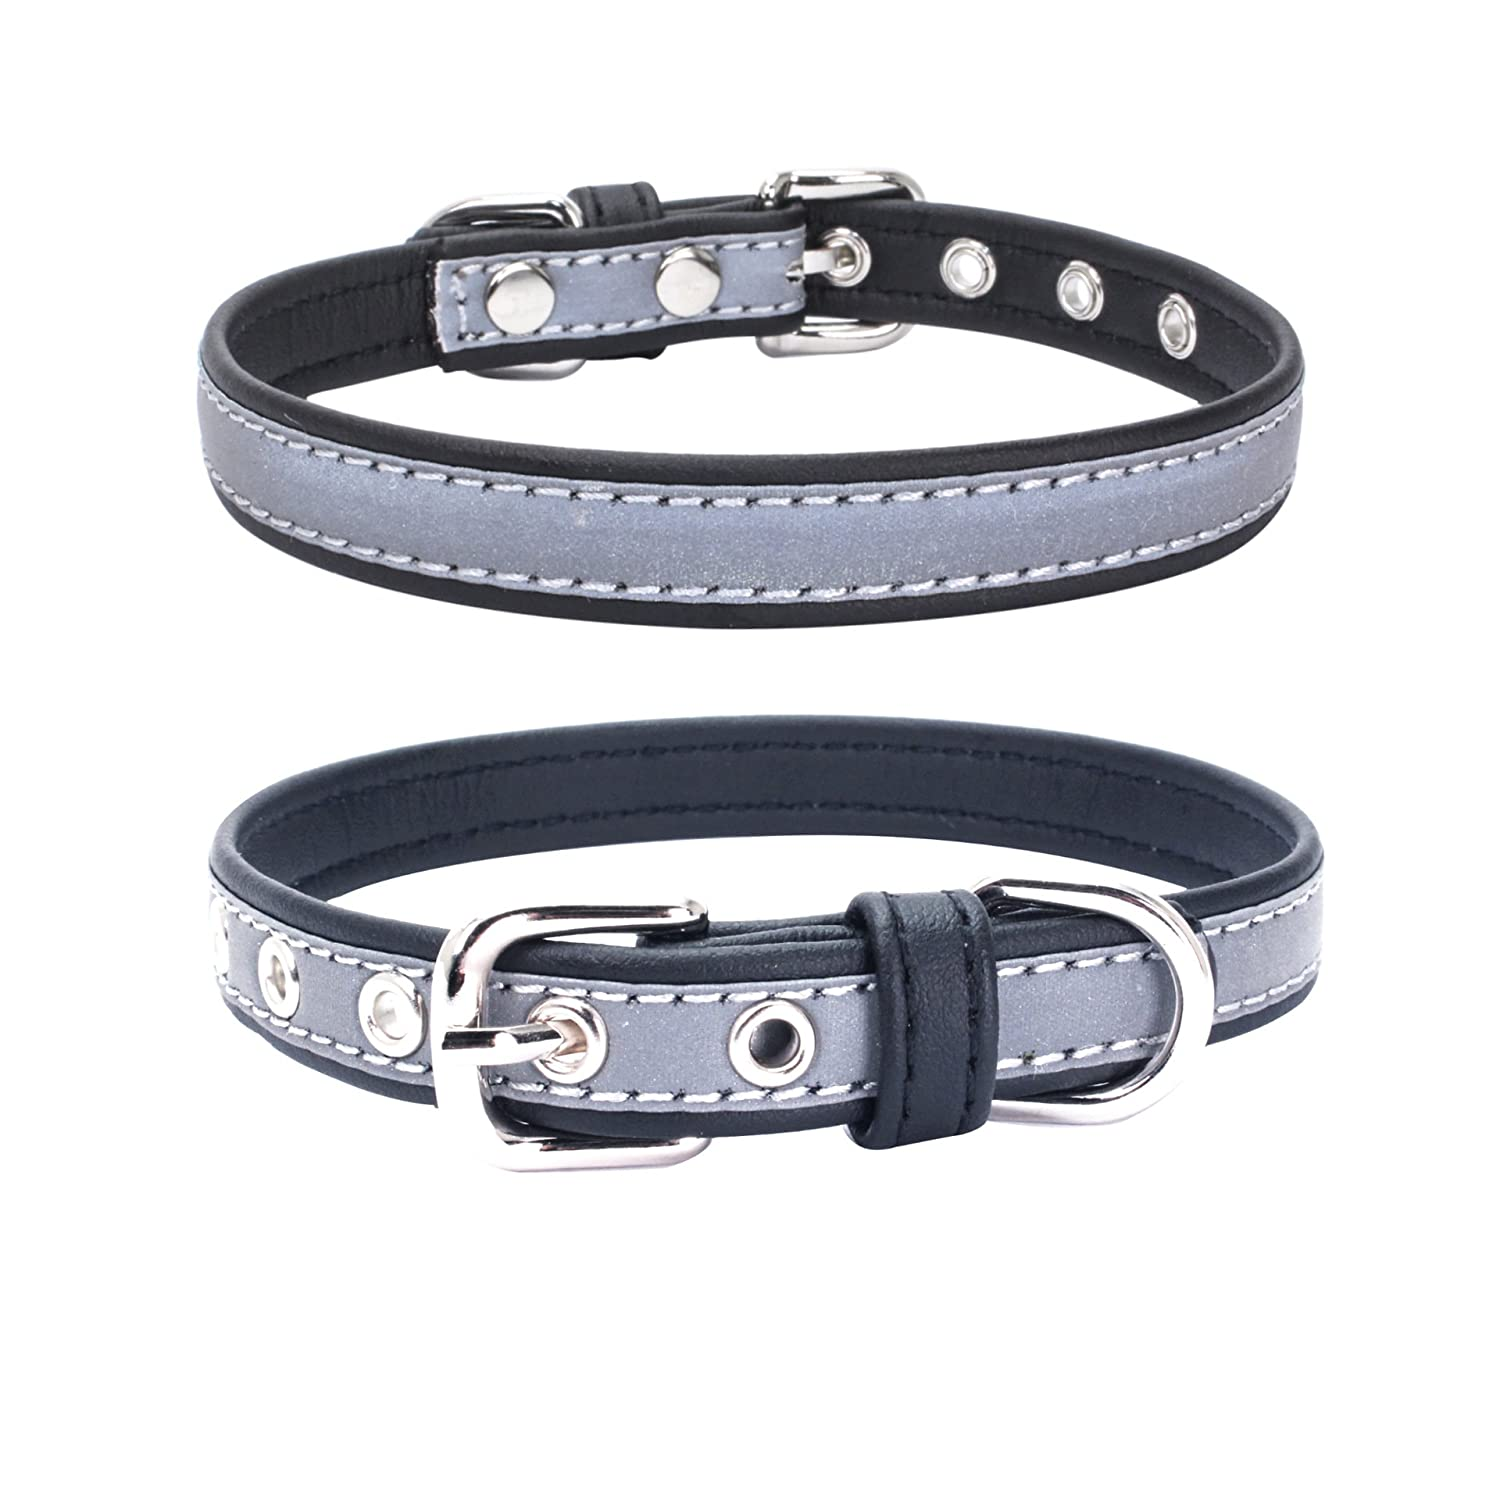 Mcdobexy Reflective Adjustable Leather Dog Collar for Small Medium Large Baby Puppies